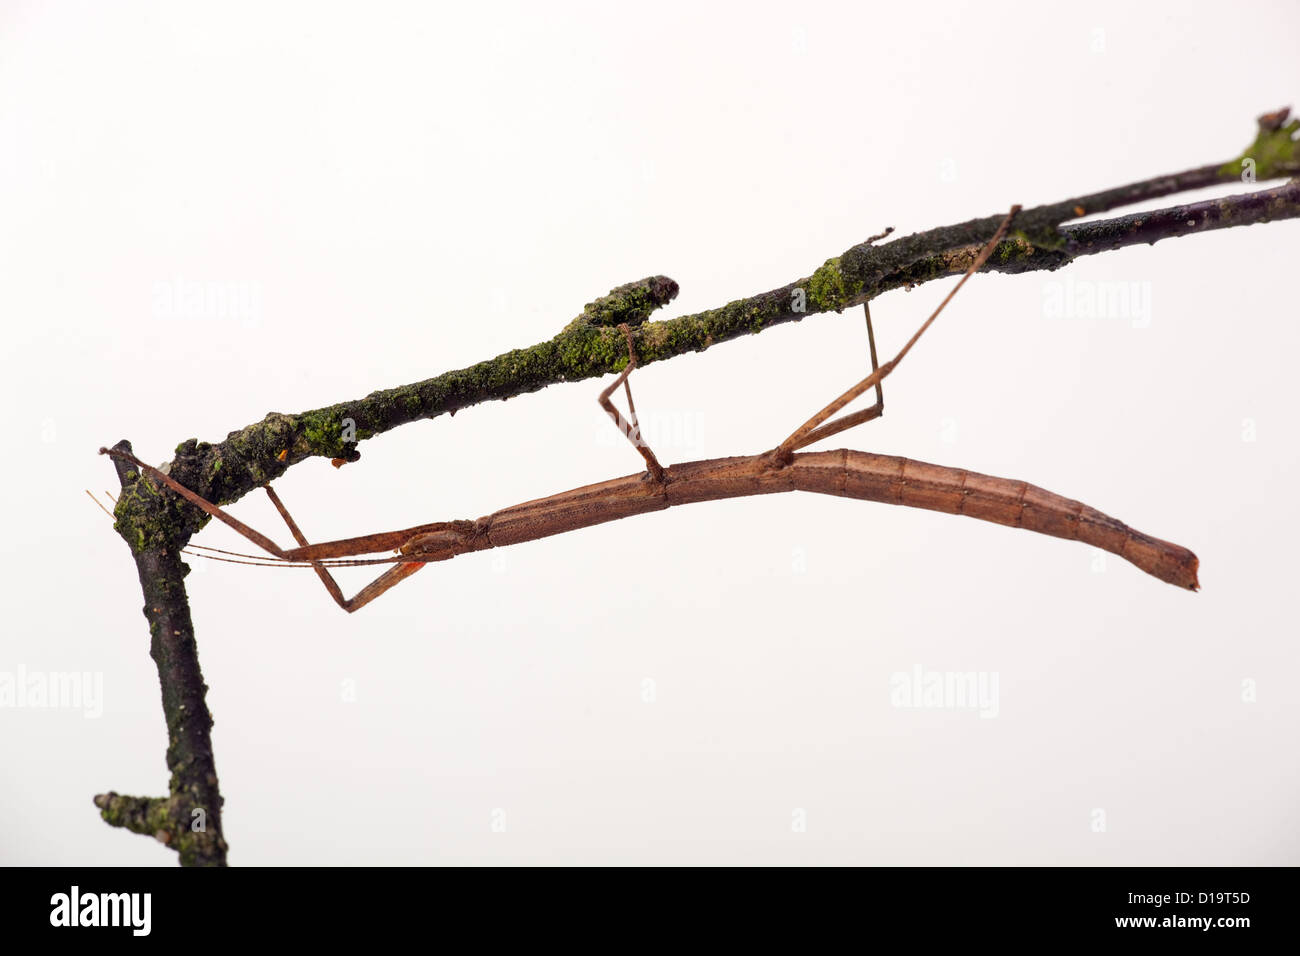 Stick insect Carausis morosus on twig - Stock Image